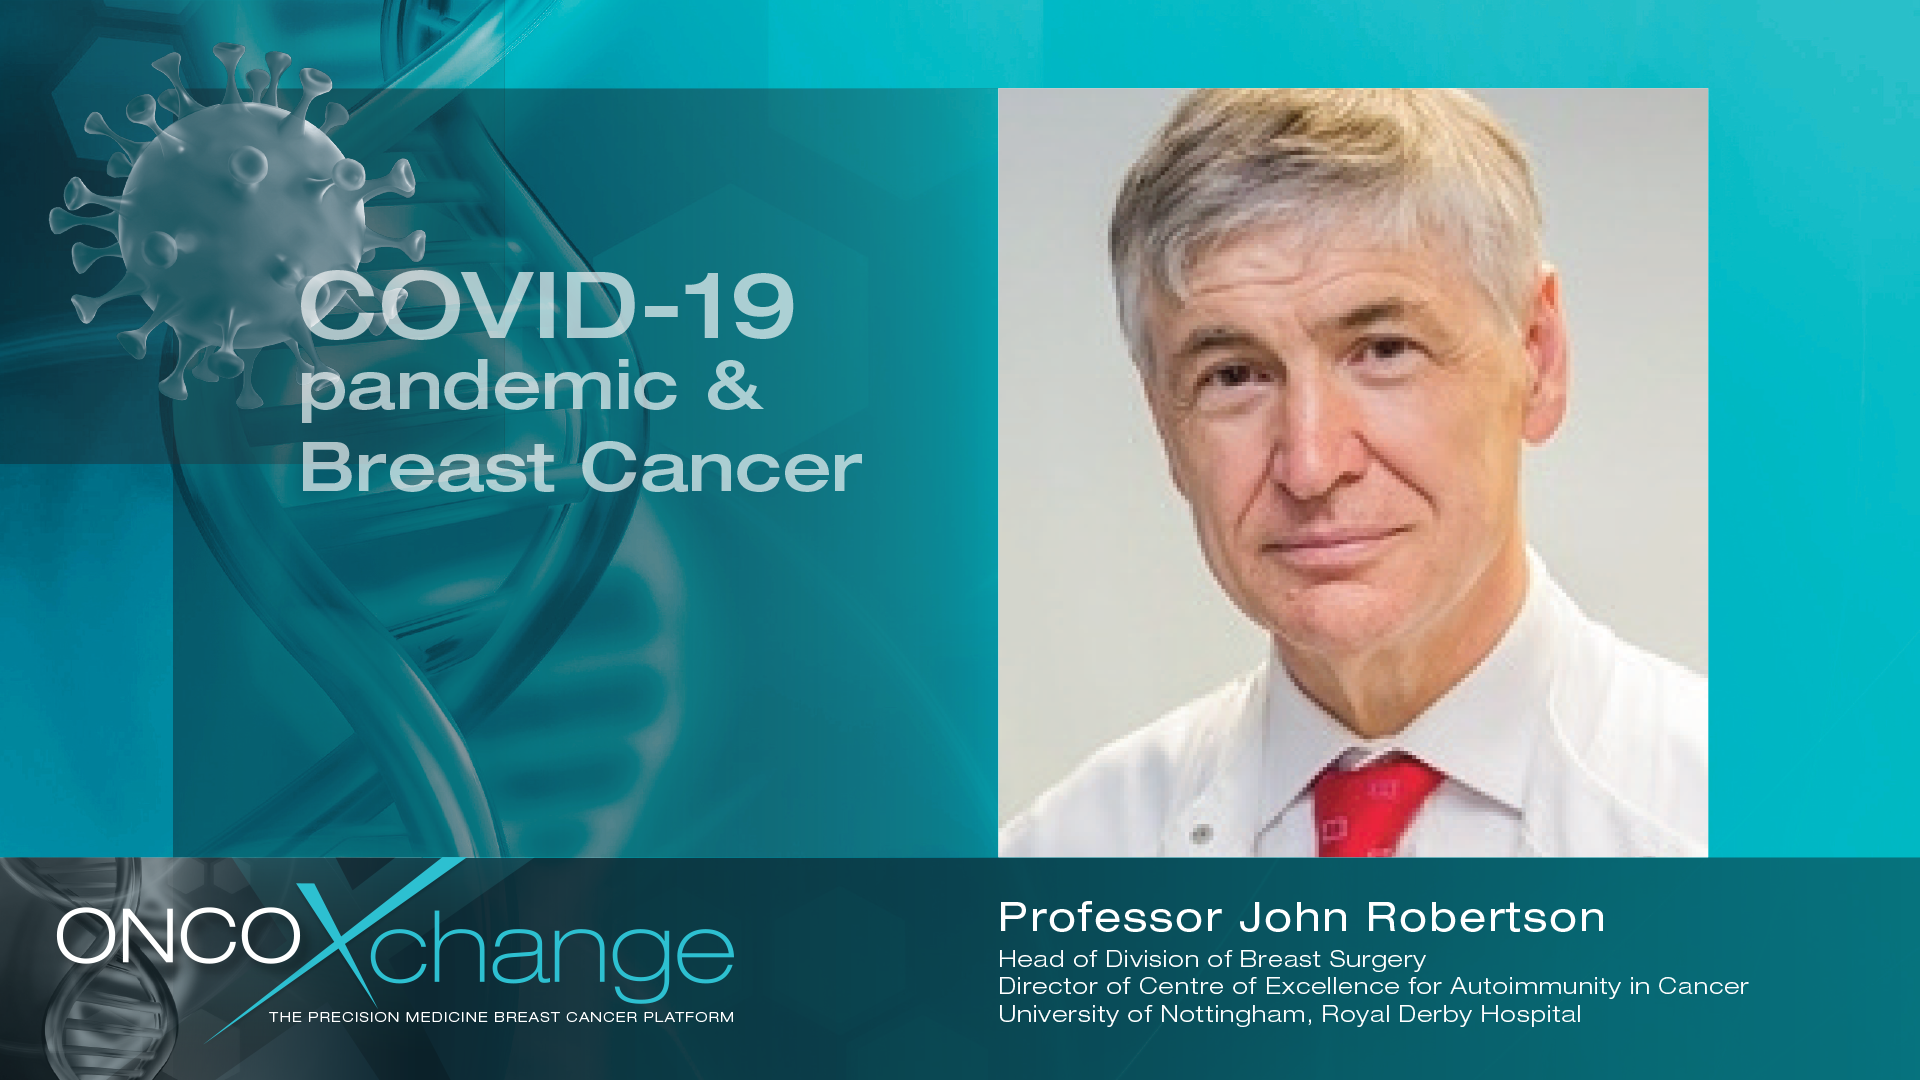 COVID-19 pandemic and Changes in Breast Cancer Management in the UK